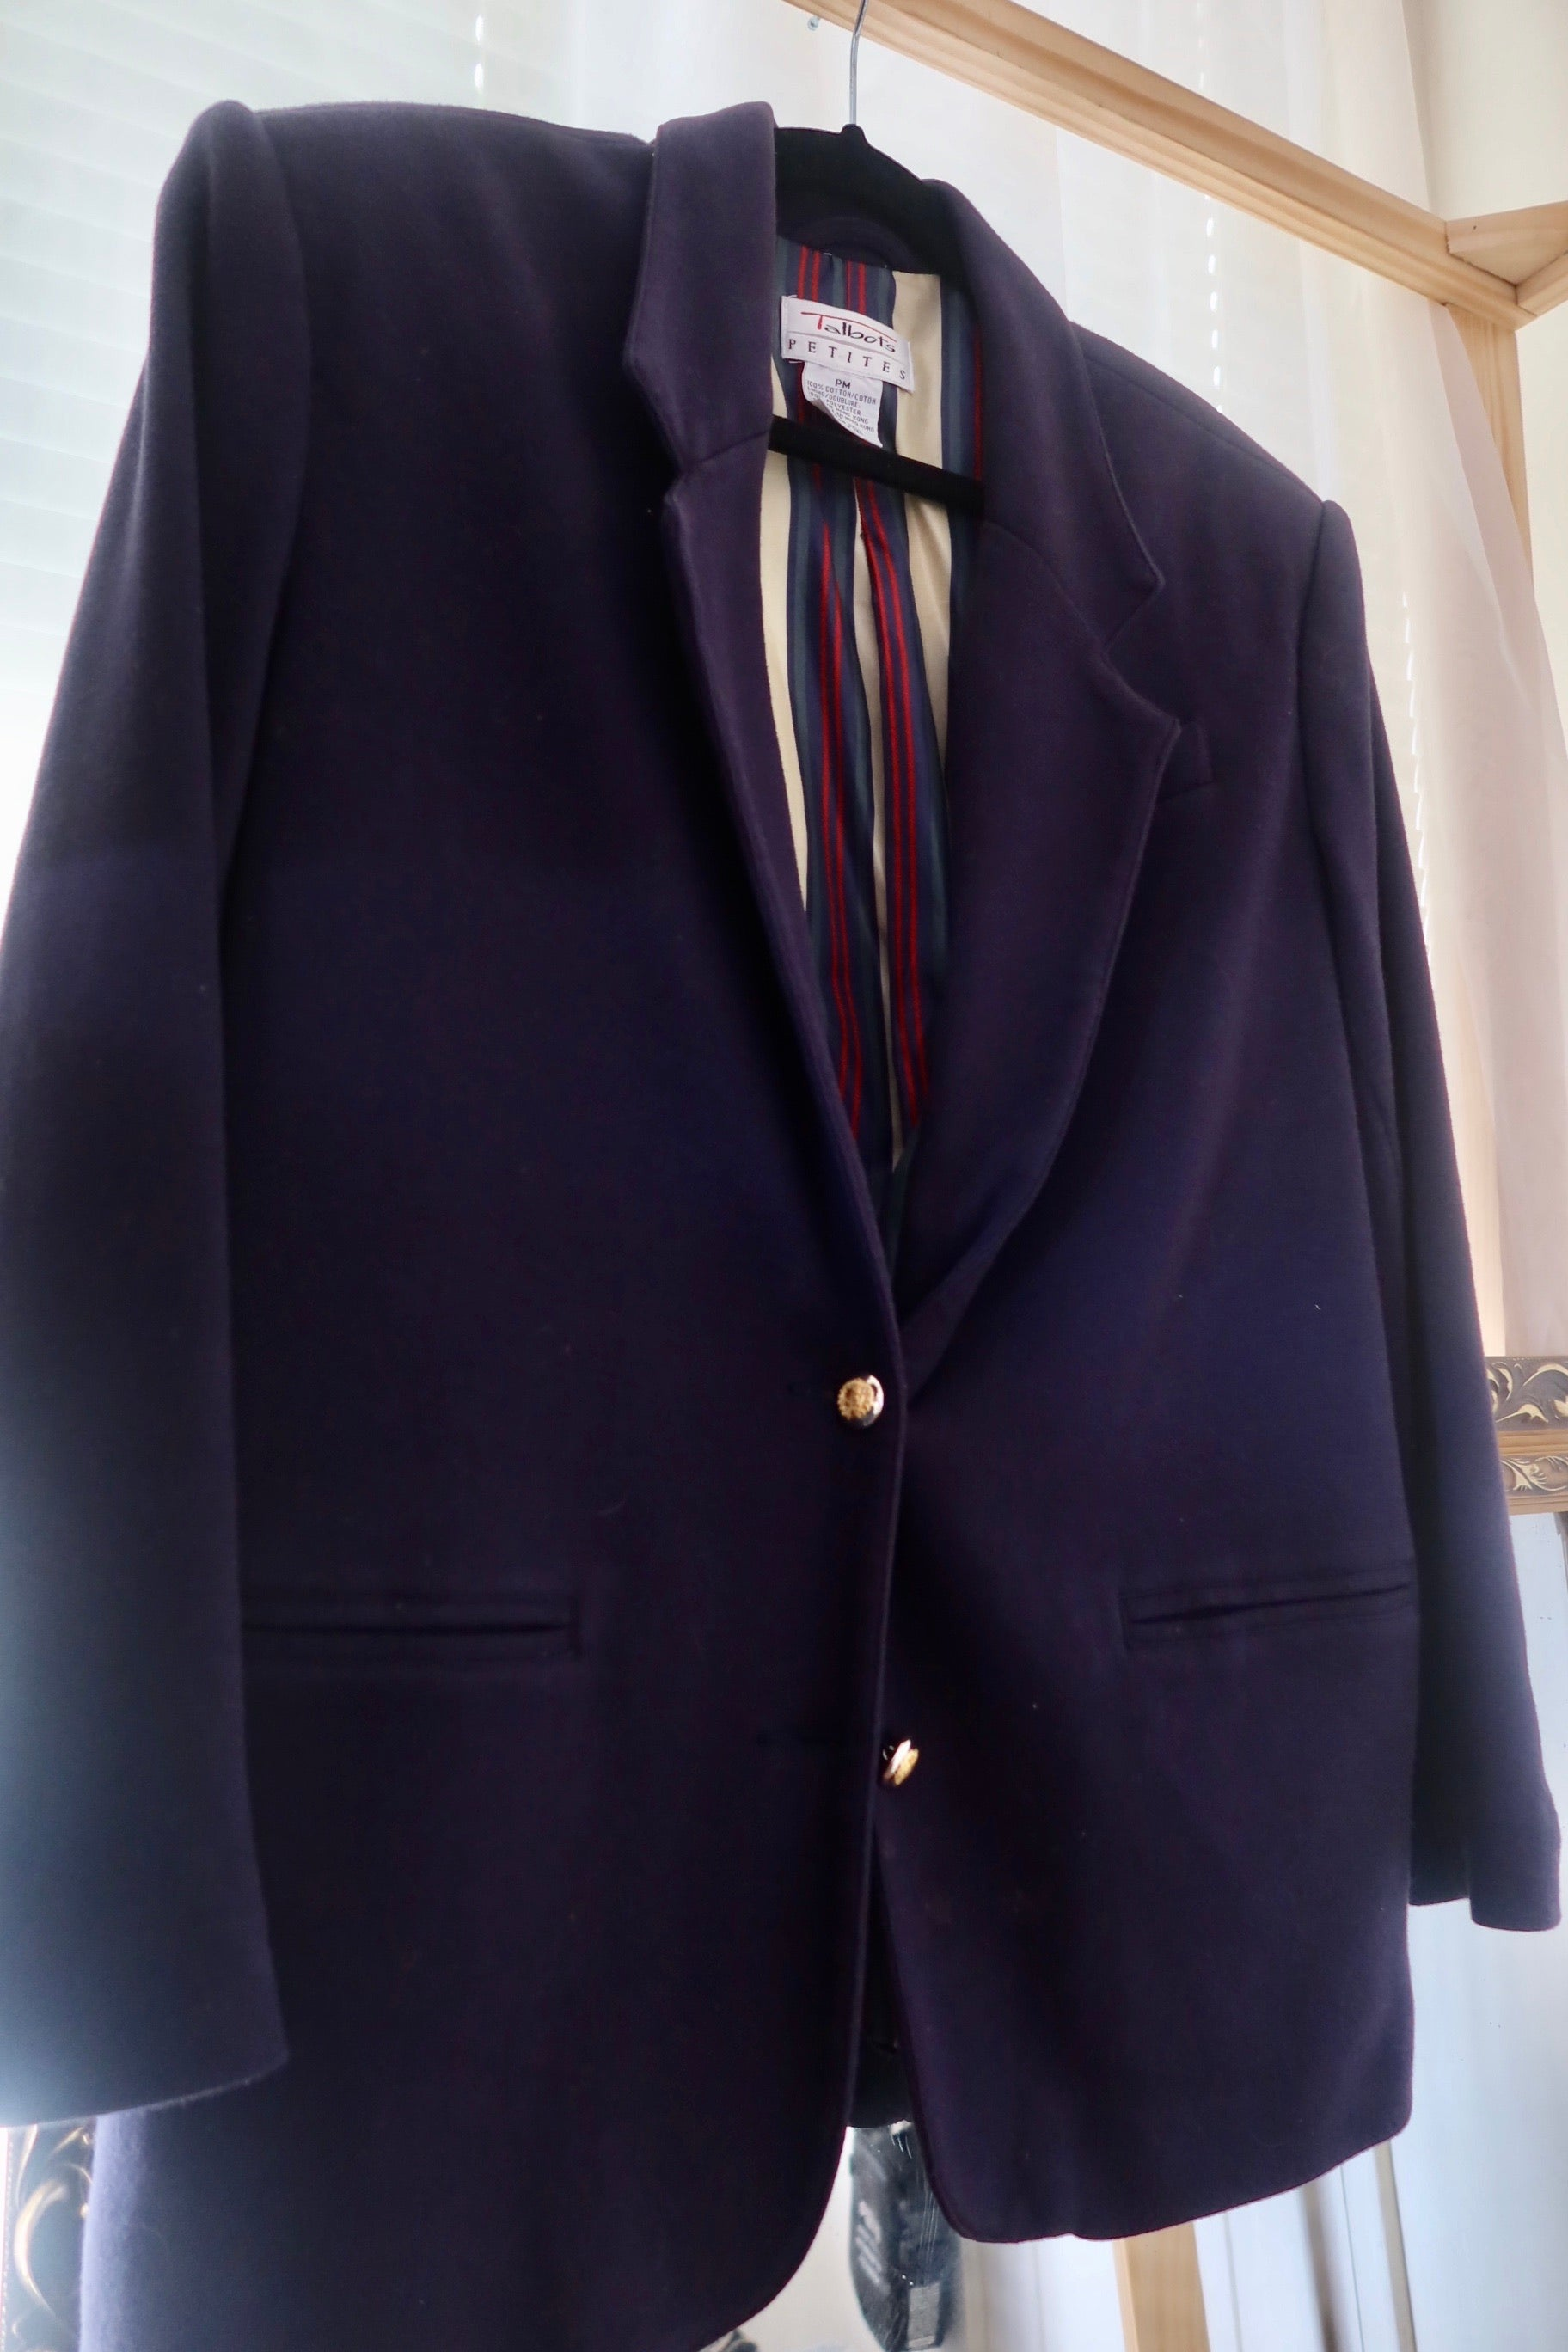 Navy blazer w/stripes